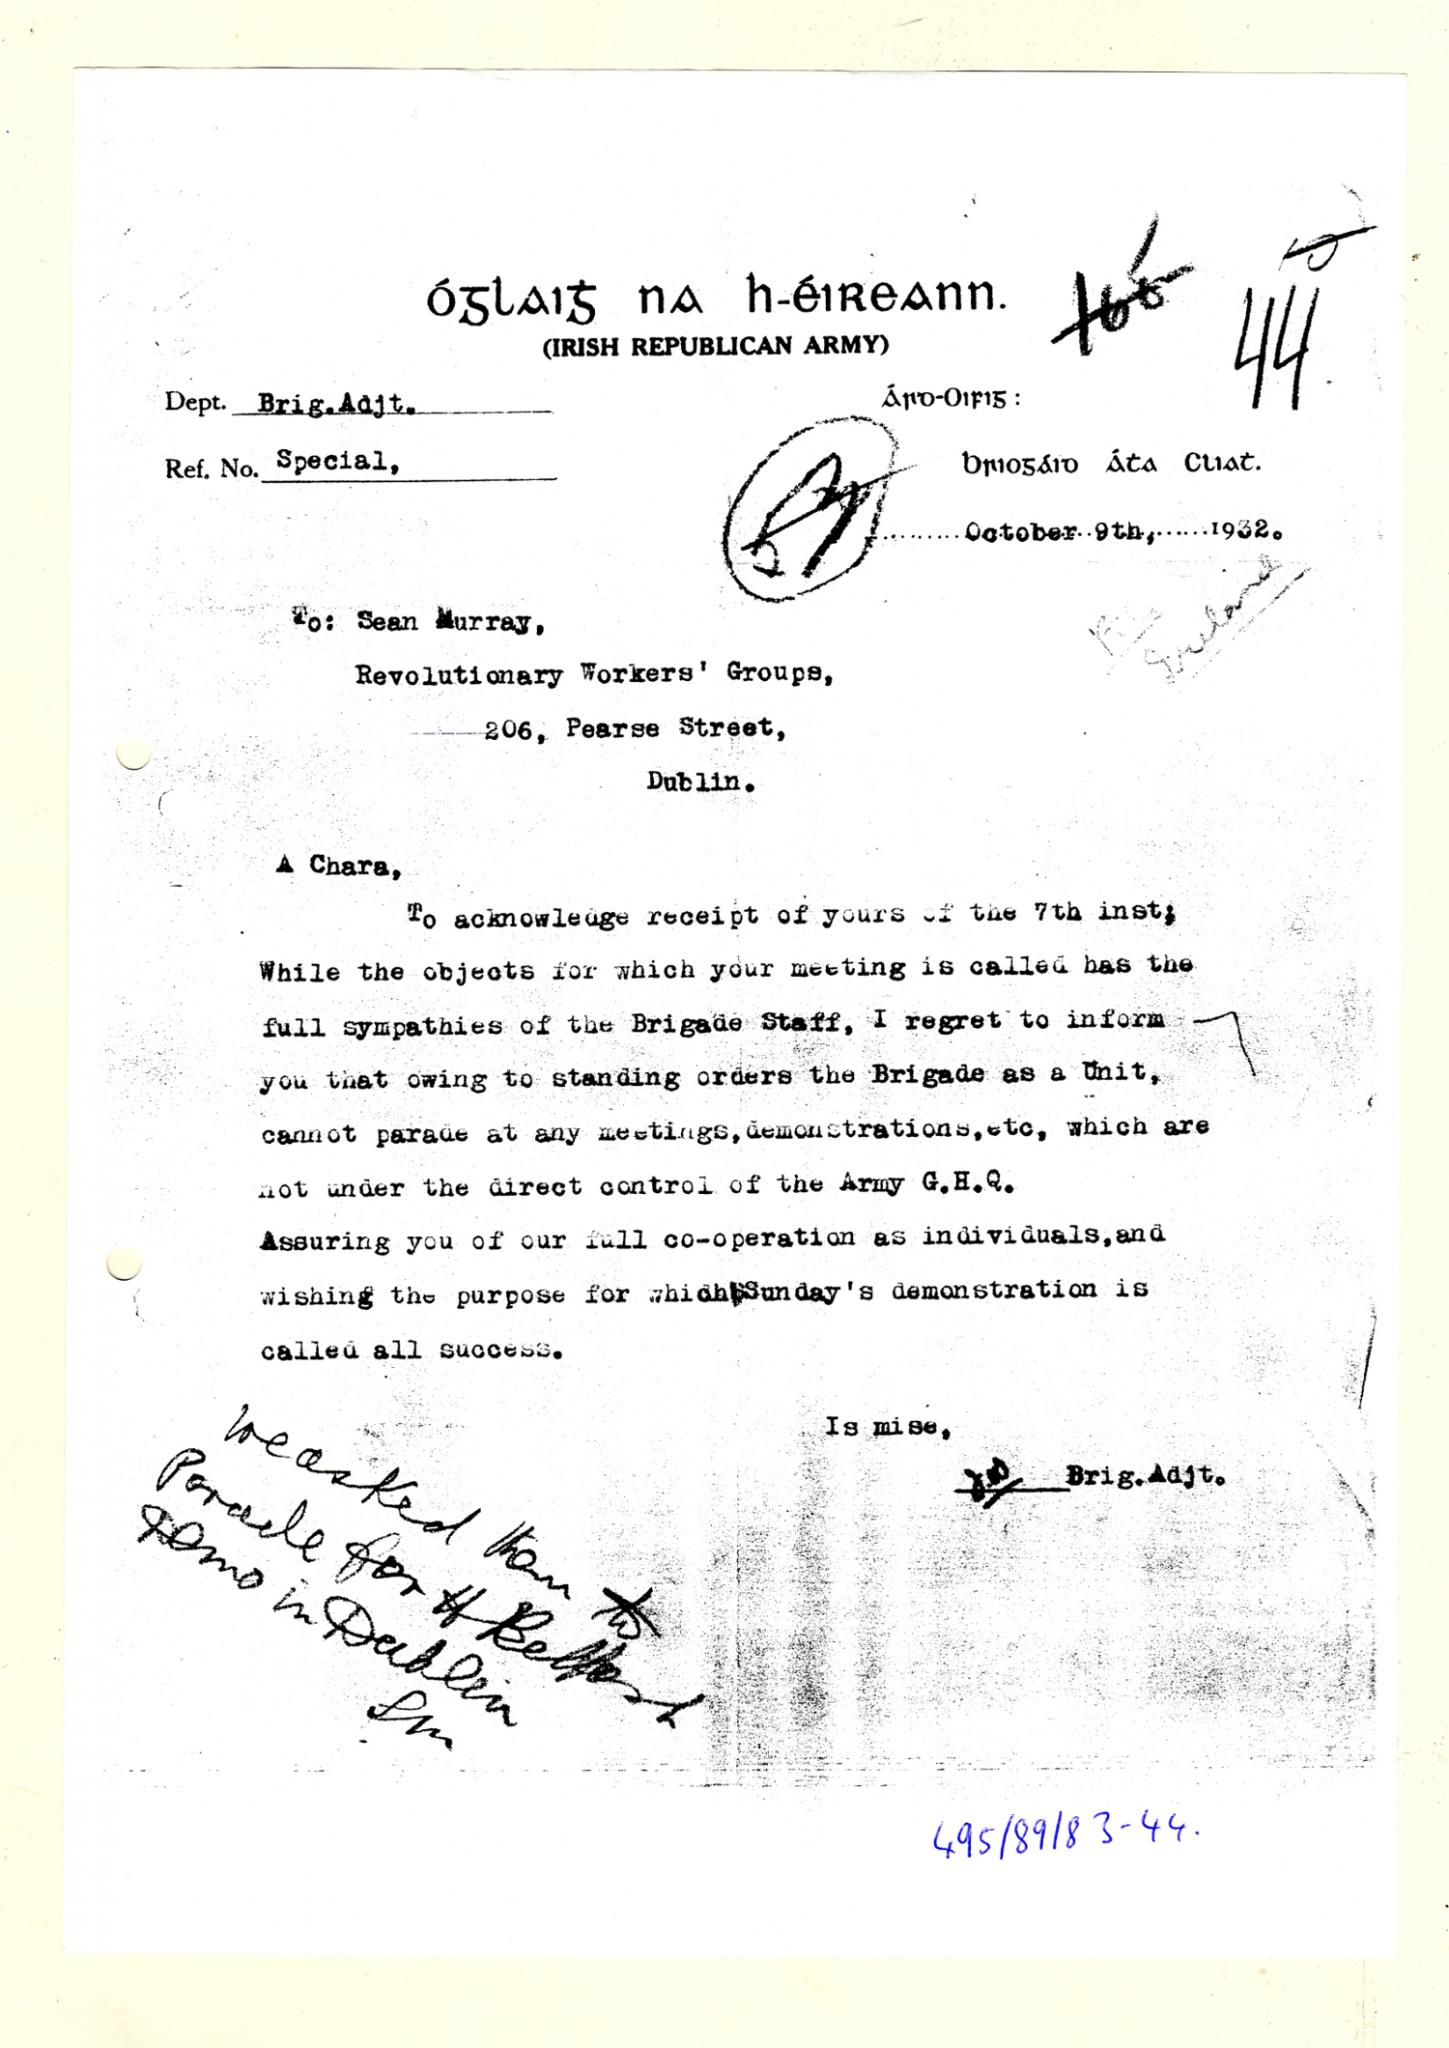 7560e75a531 Letter from the IRA to Sean Murray 9 10 1932 (MS57 4 1 495 89 83